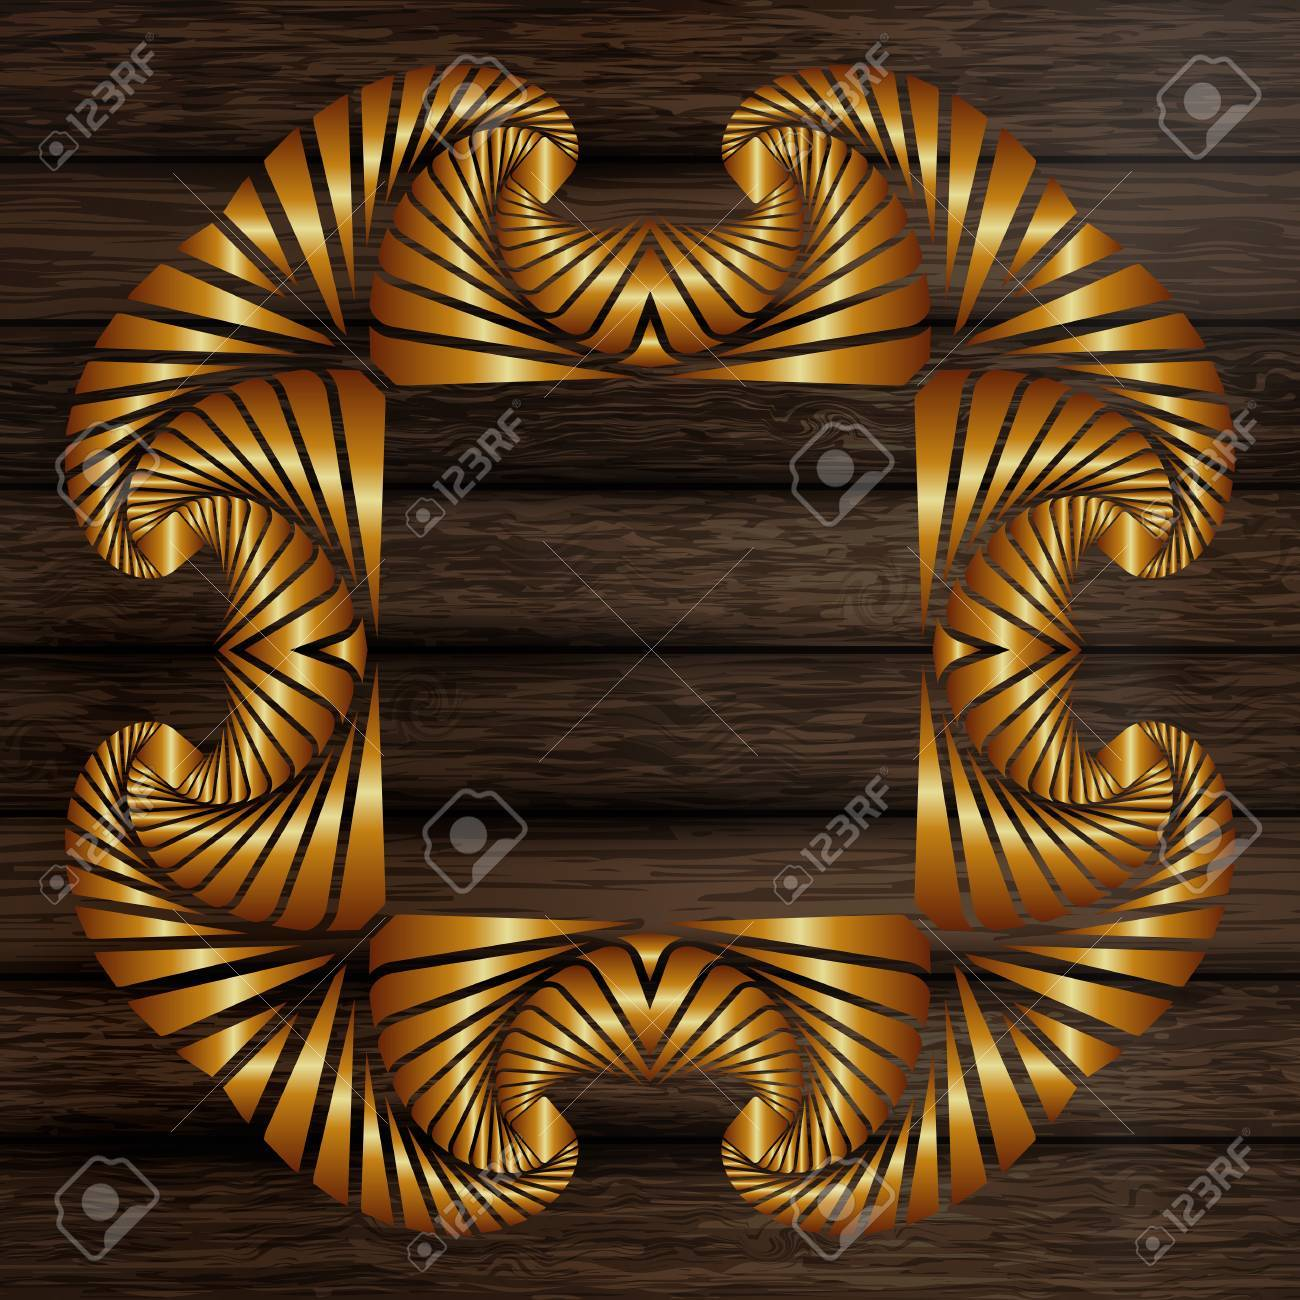 Abstract Decorative Golden Frame On Wooden Horizontal Plank Boards ...